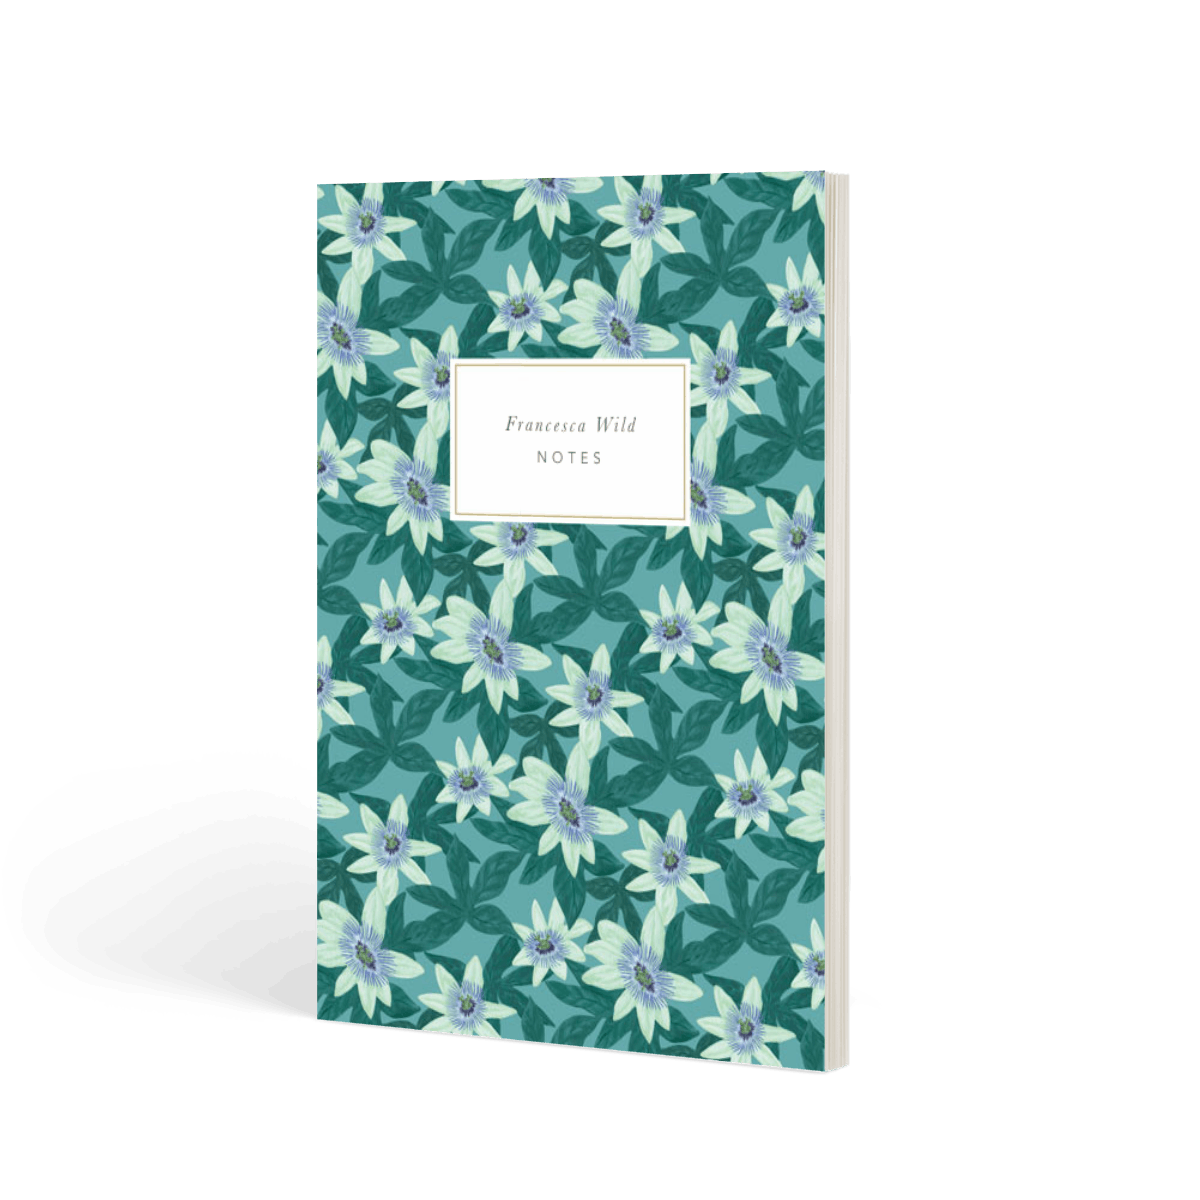 Https%3a%2f%2fwww.papier.com%2fproduct image%2f20830%2f6%2fpassion flower green 5317 front 1490092170.png?ixlib=rb 1.1